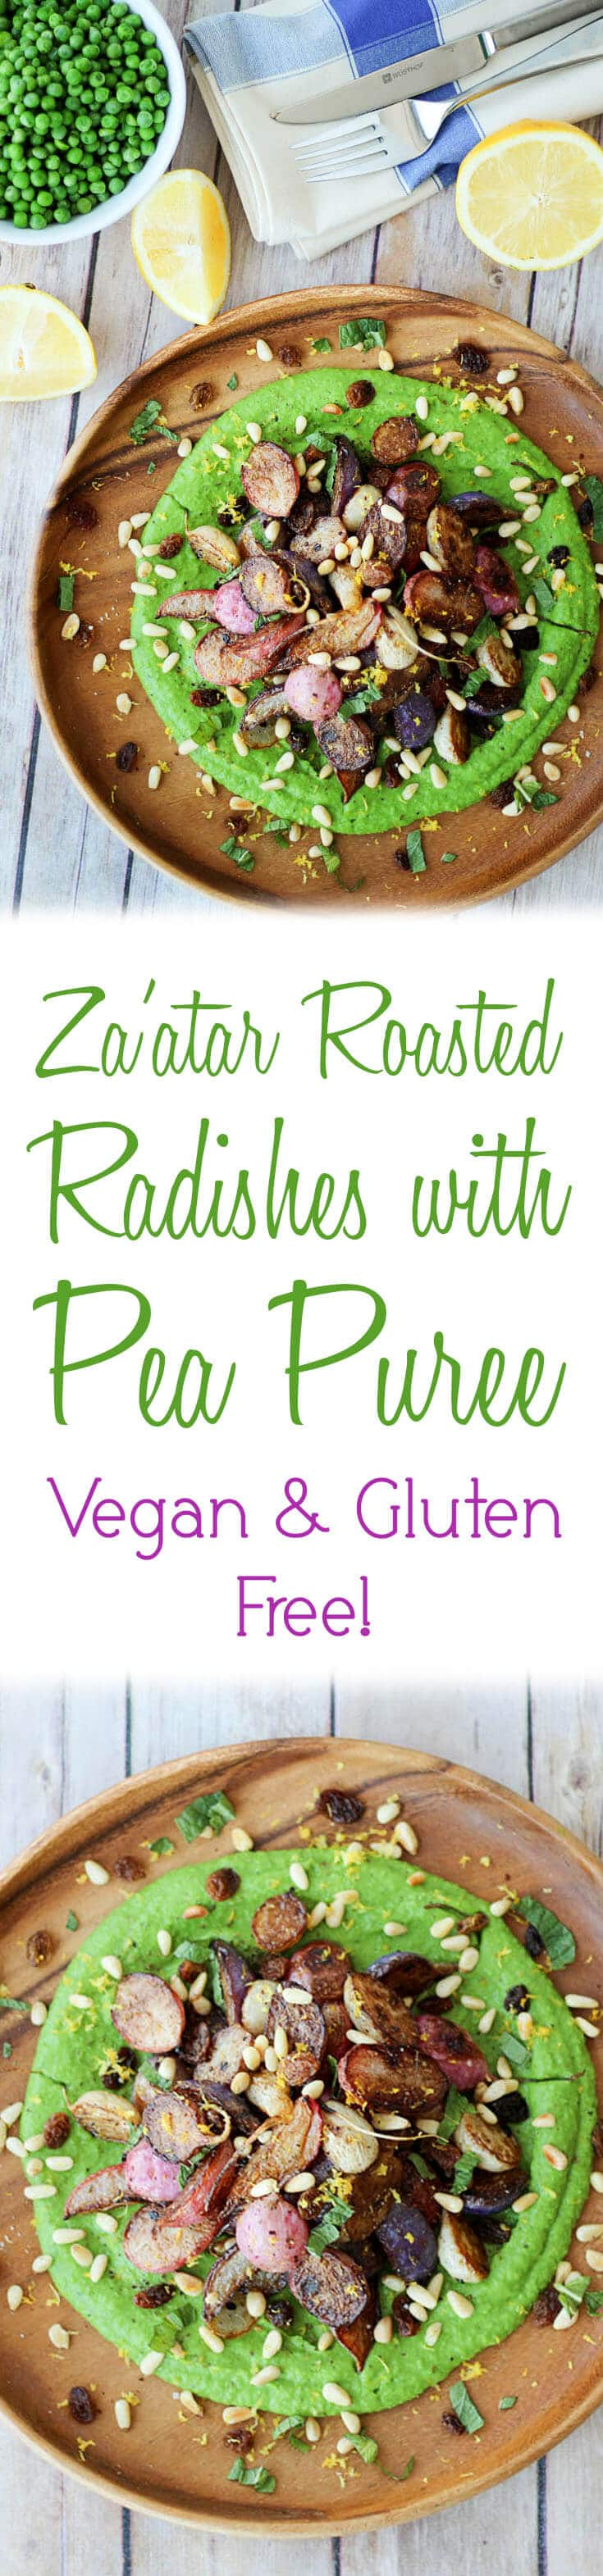 "A pinterest image of roasted radishes with the overlay text ""Za\'atar Roasted Radishes with Pea Puree Vegan * Gluten Free!\"""